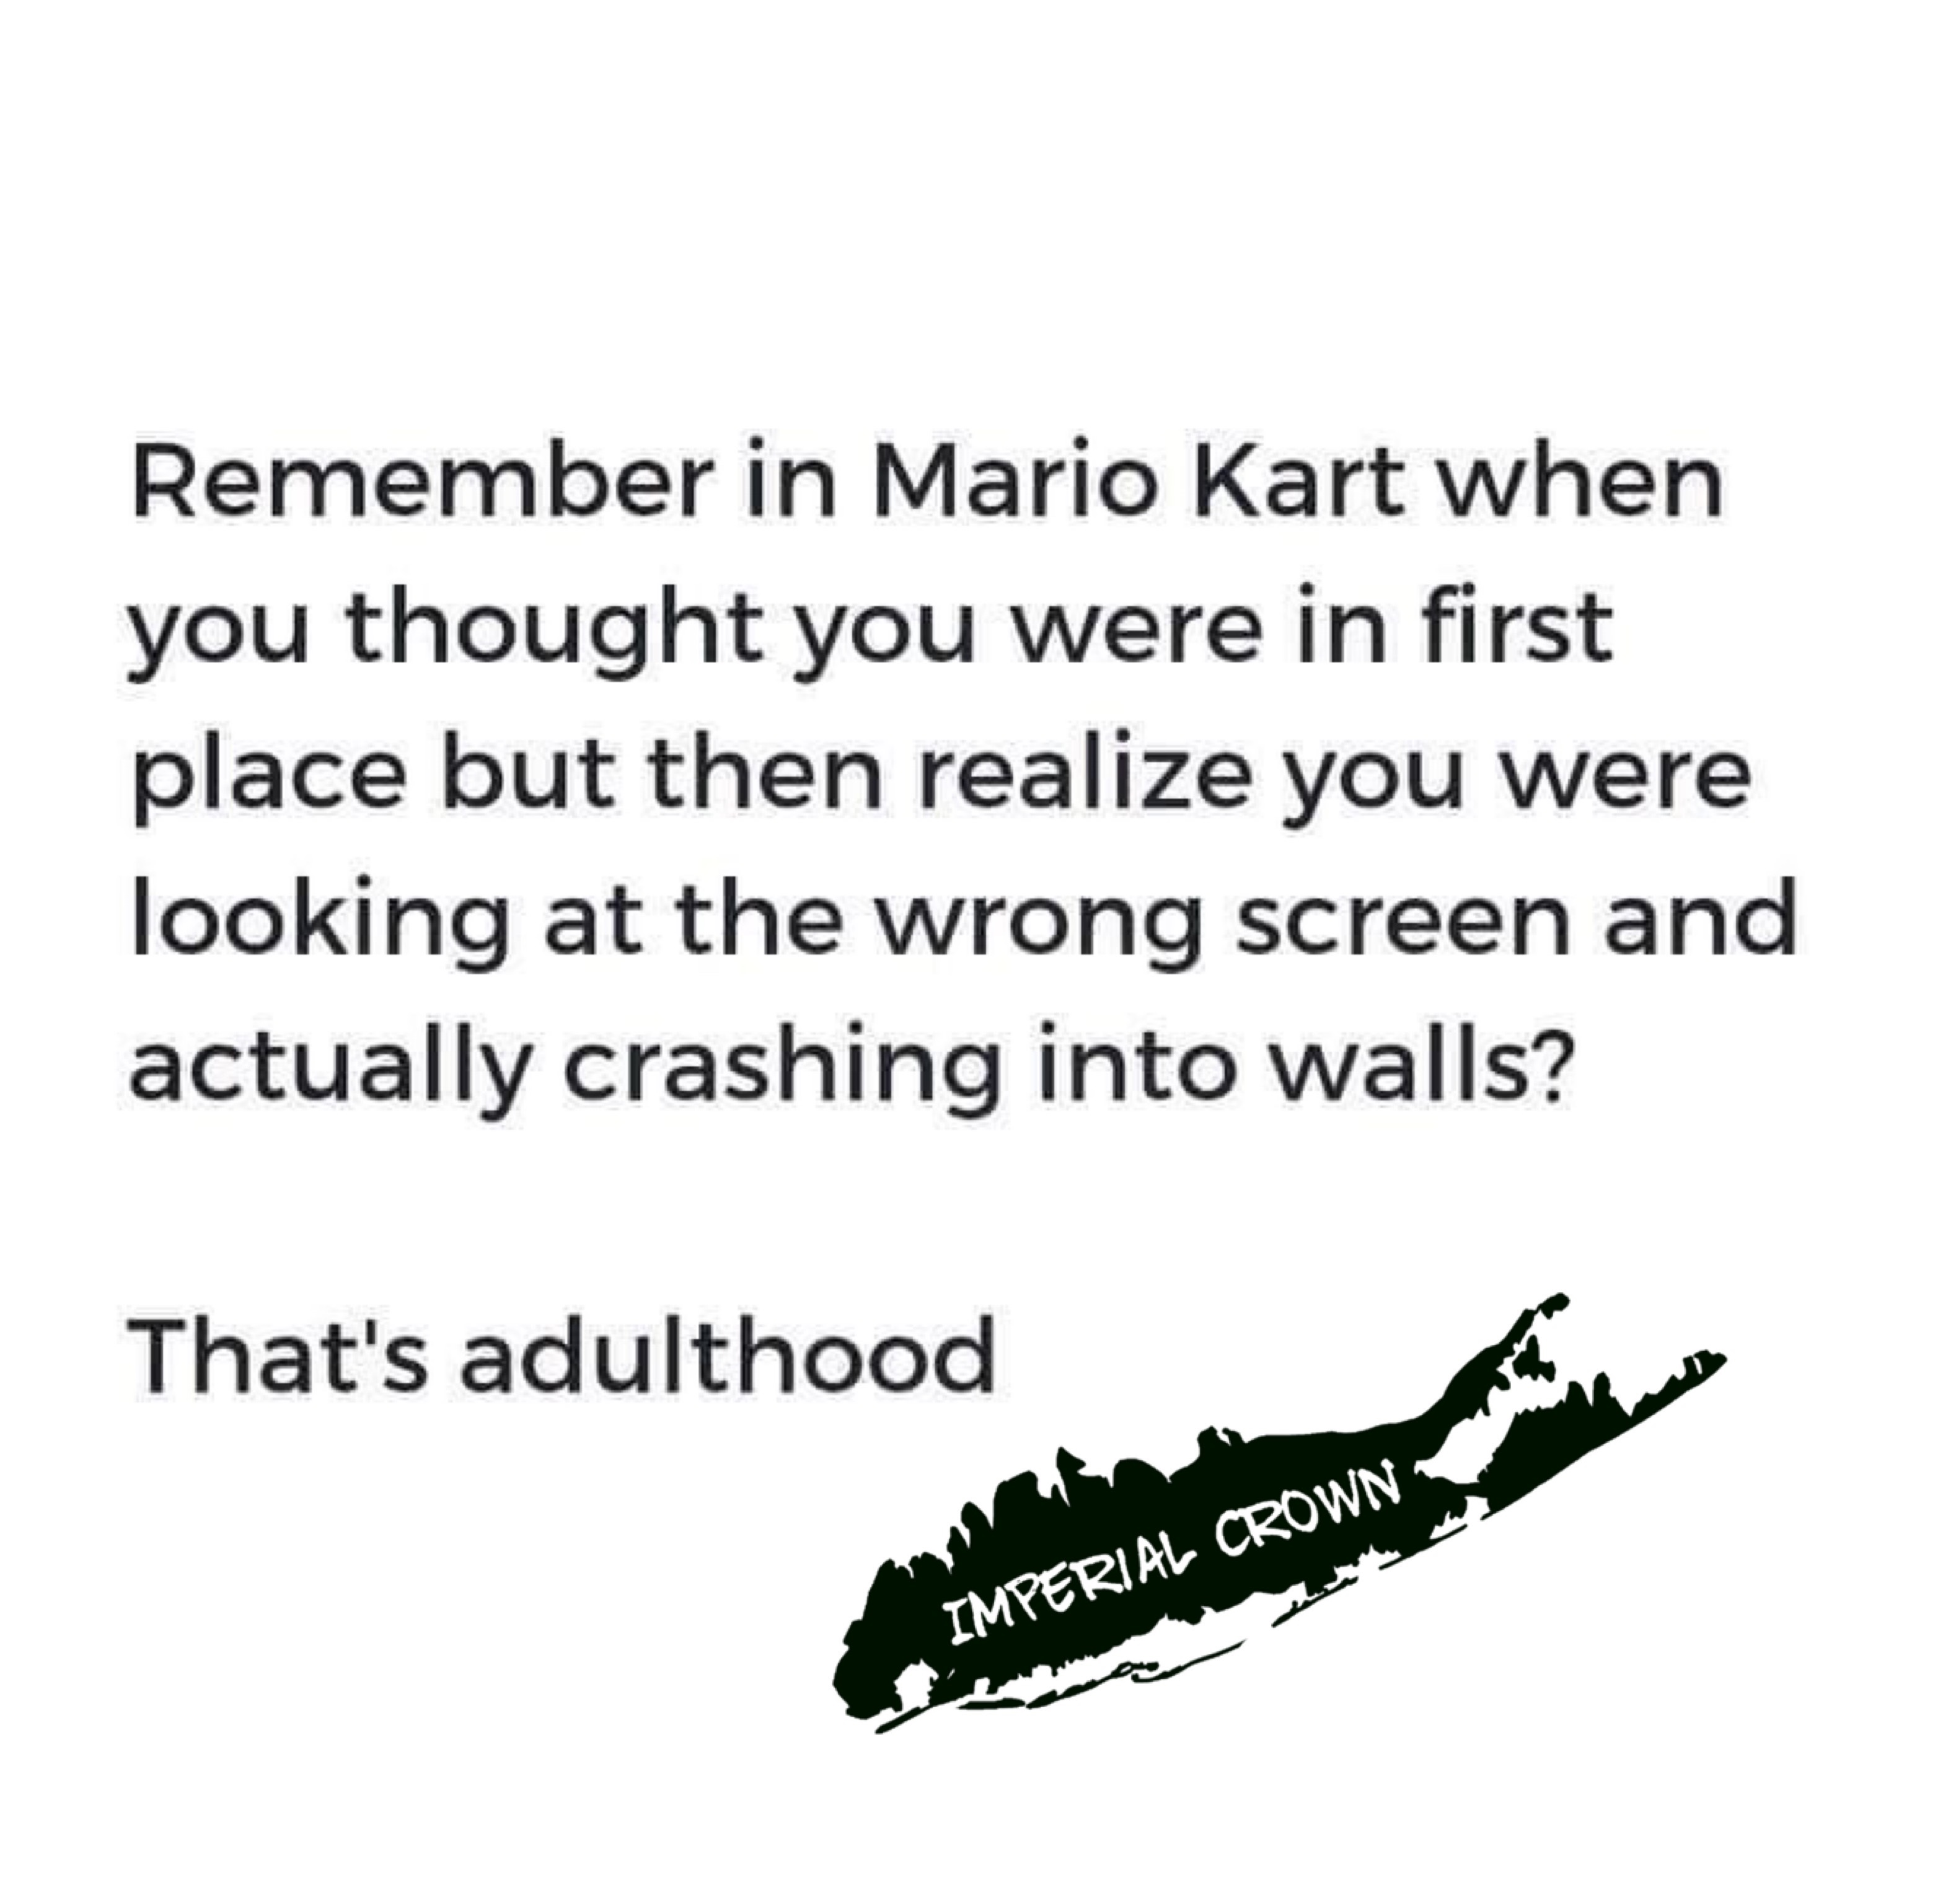 Remember in Mario kart when you thought you were in first place but then you realize you were looking at